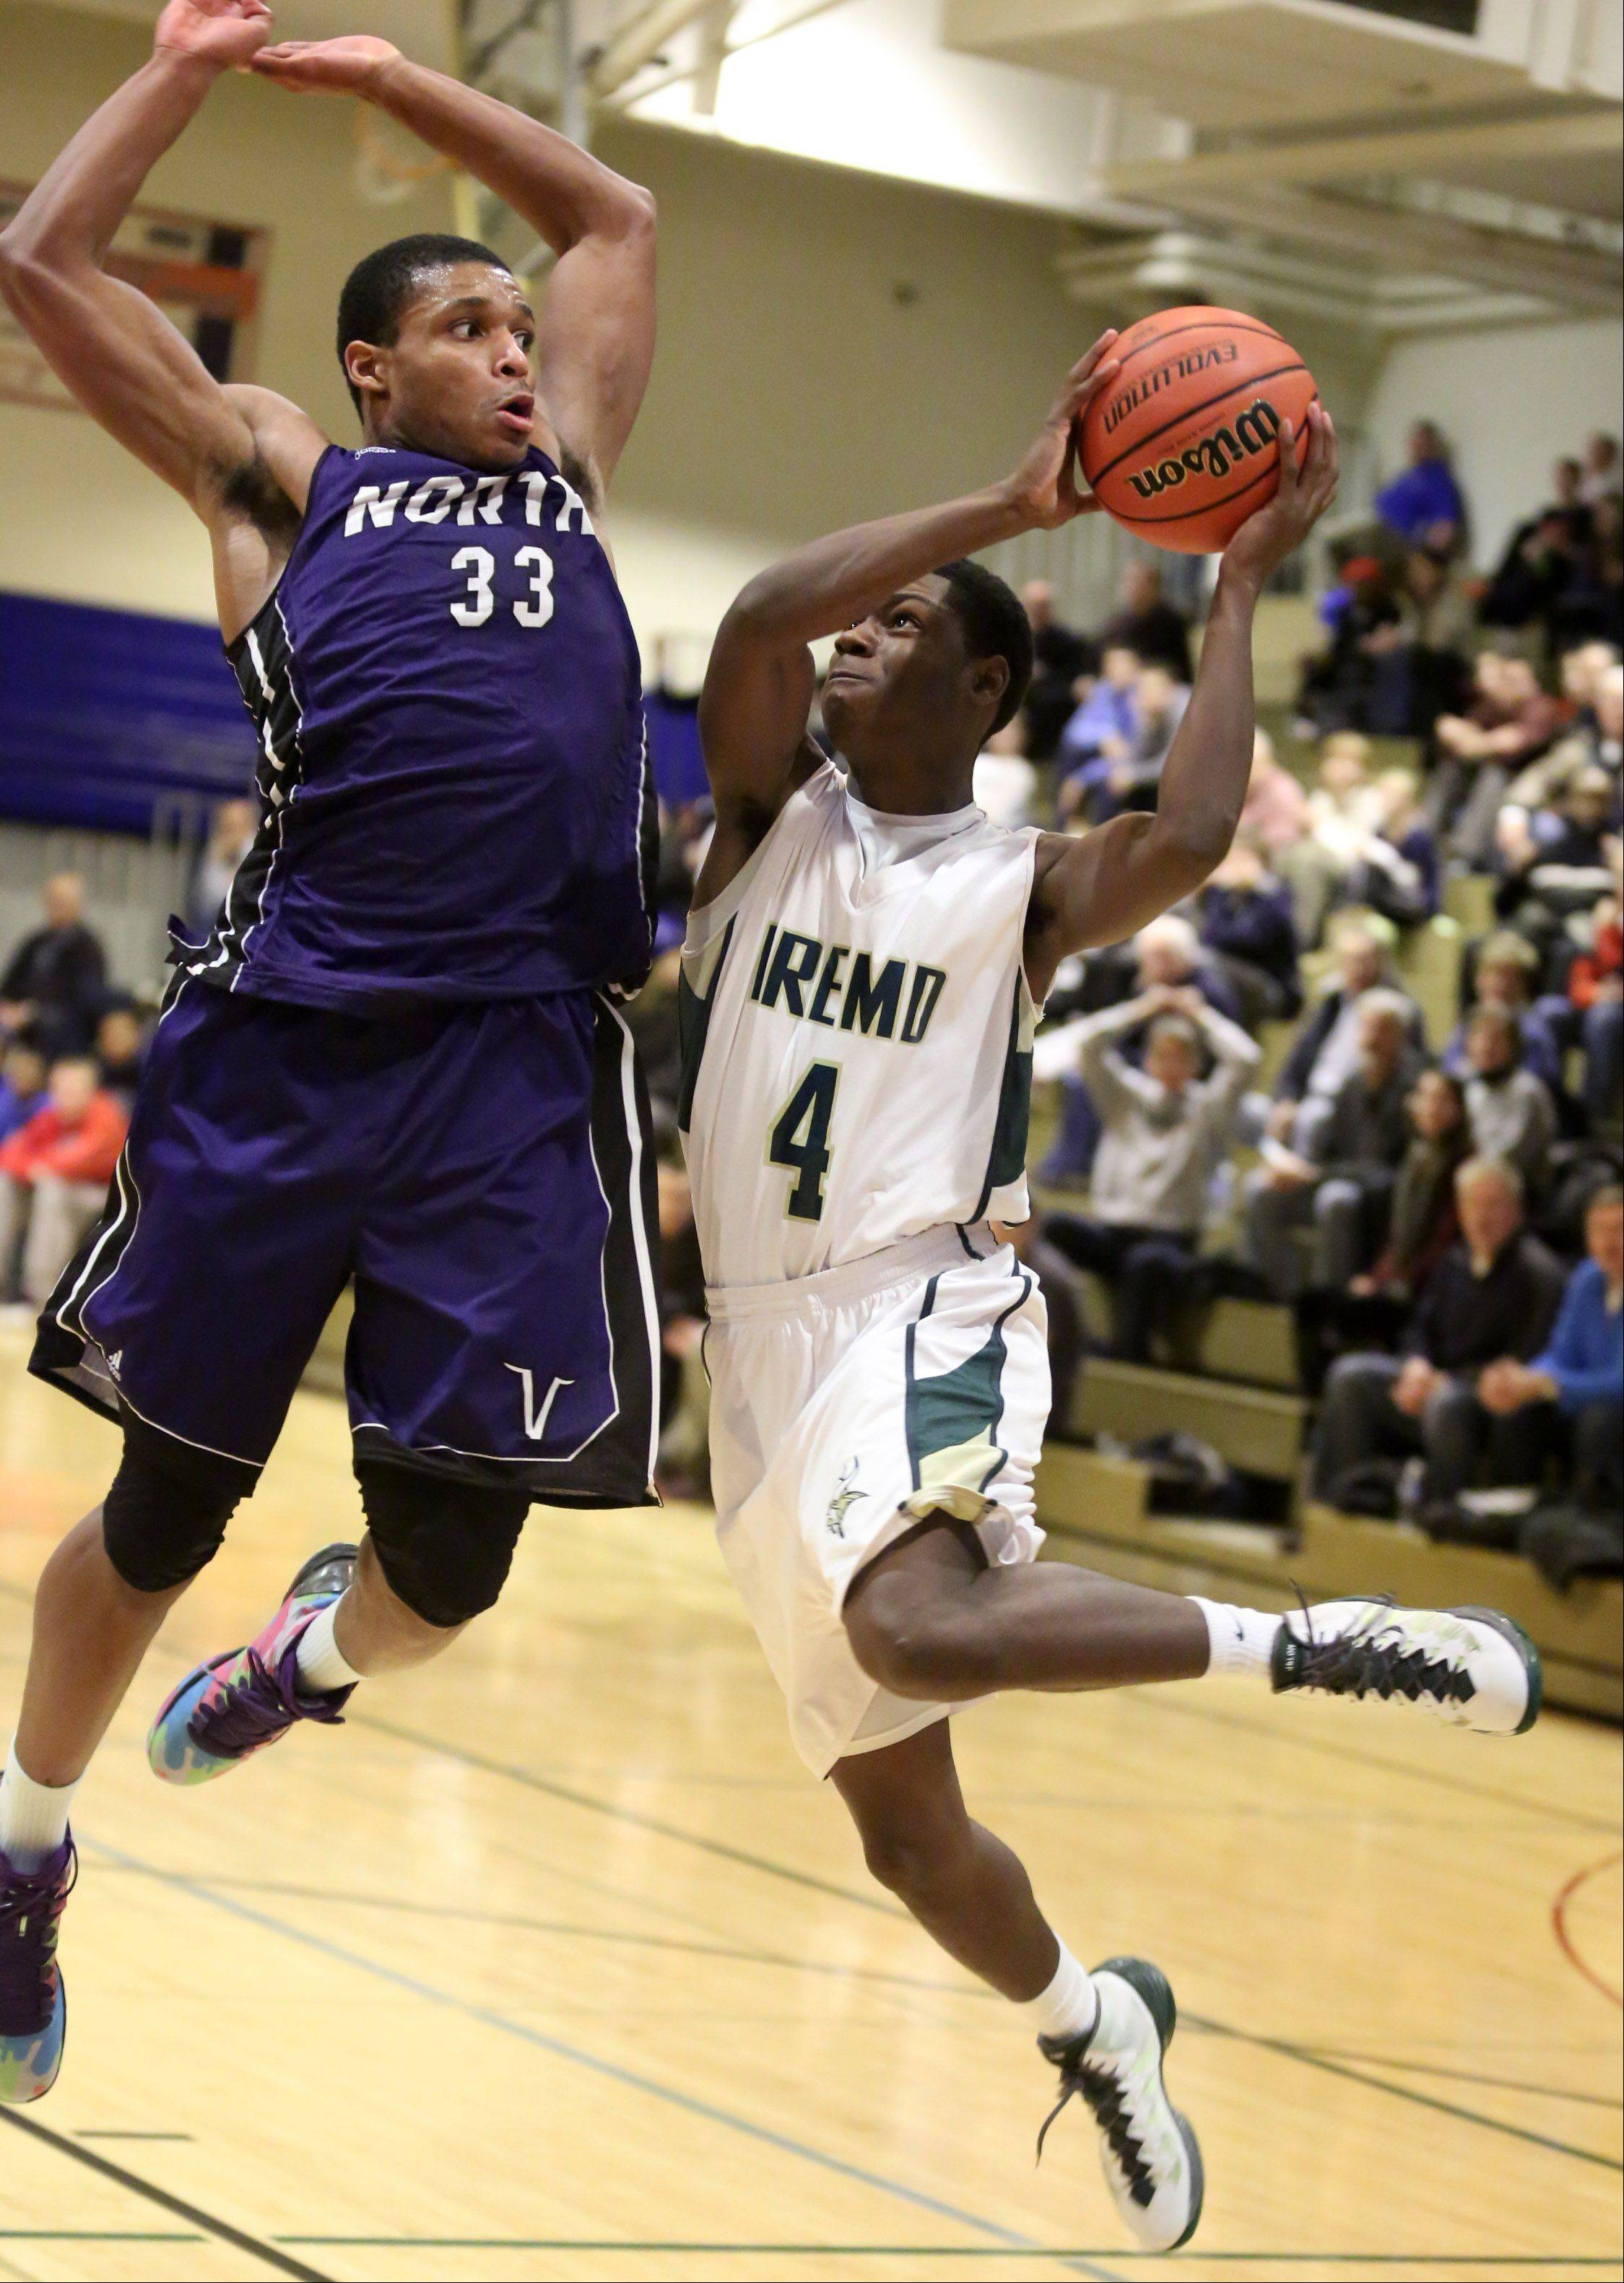 Fremd guard Jalon Roundy drives and shoot from under the basket against Niles North defender Duante Stephens on Thursday at the Wheeling Hardwood Classic.